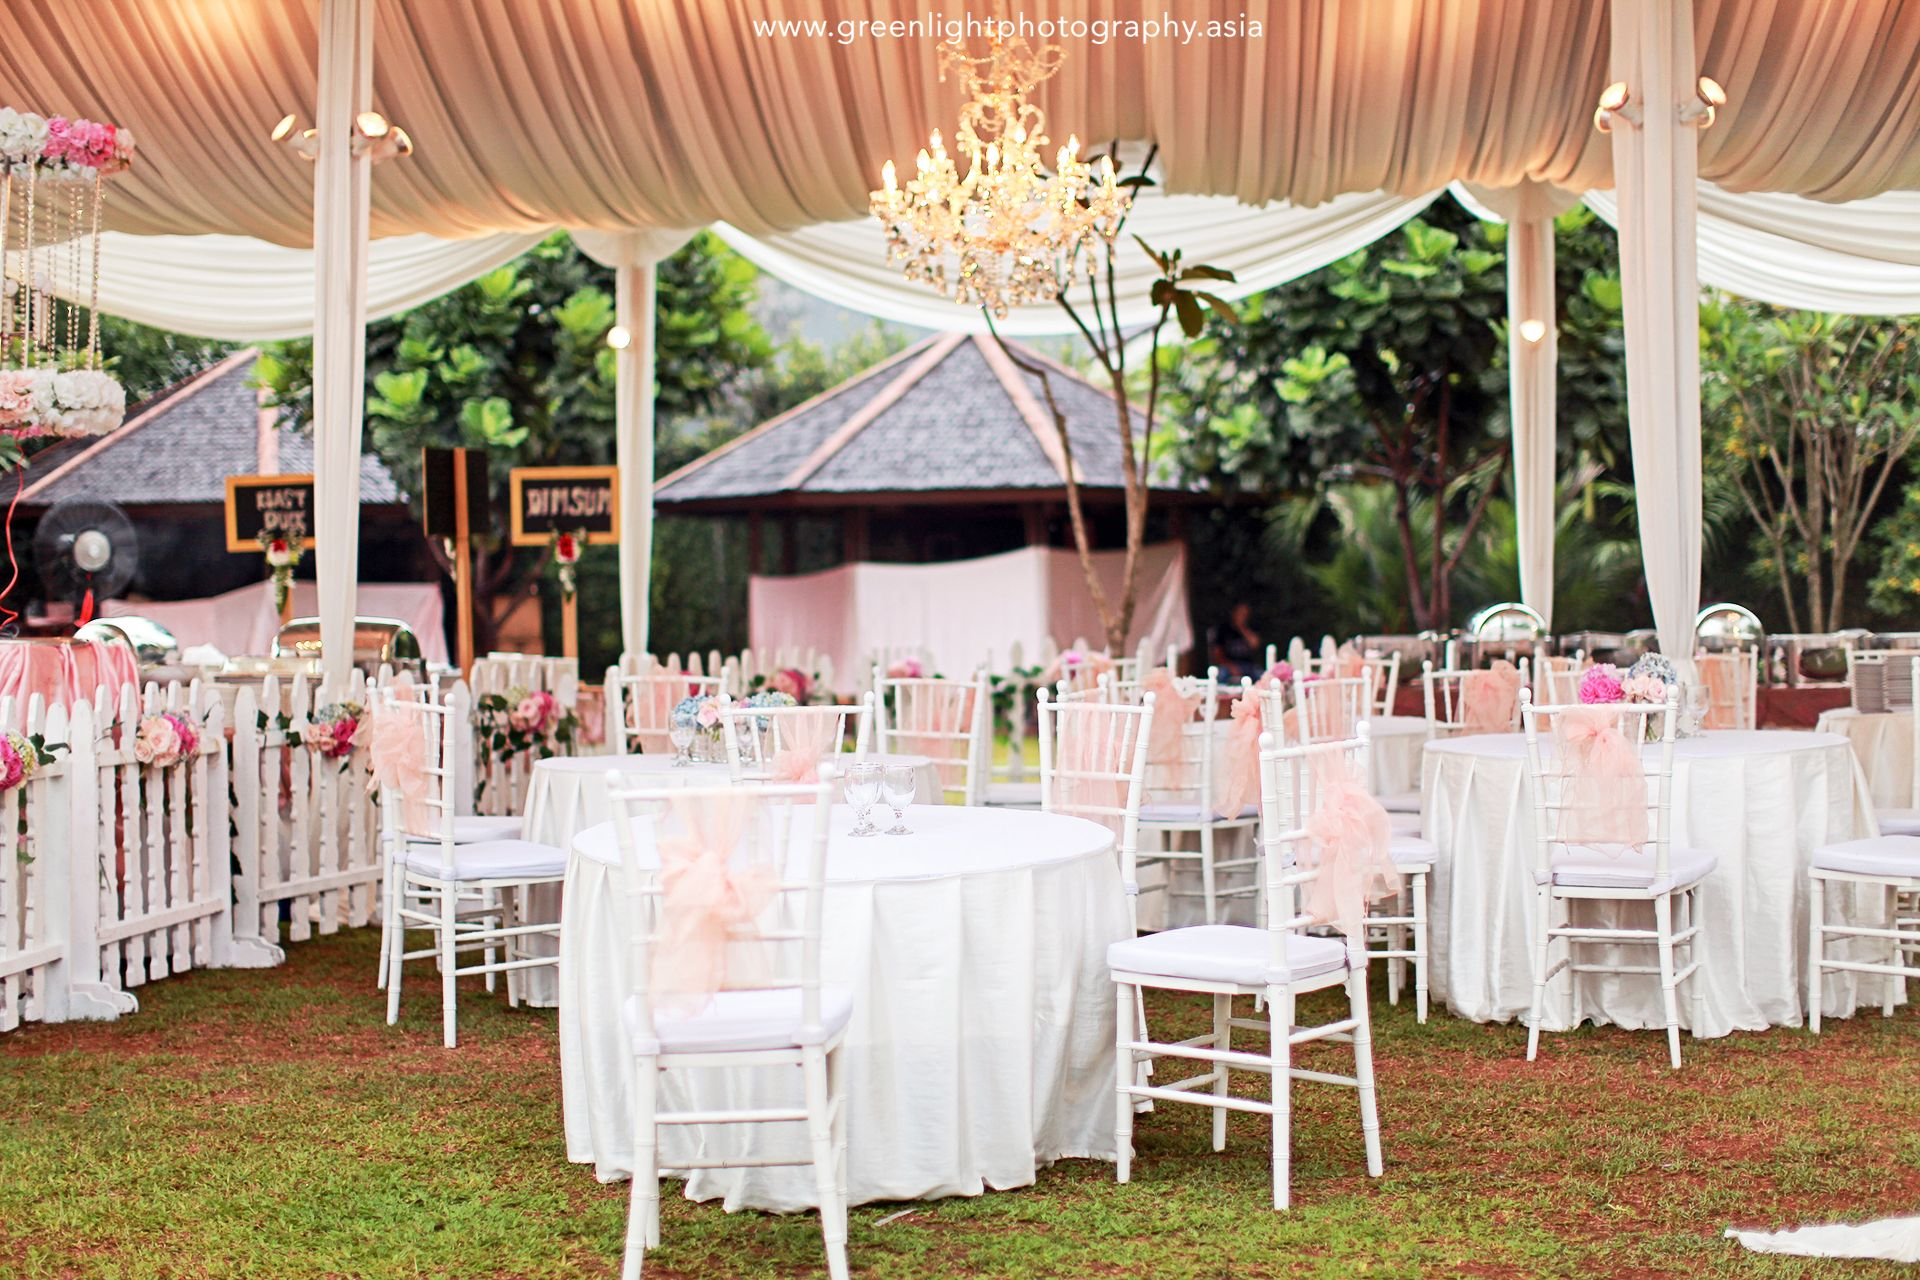 Secret garden wedding at pondok indah lestari outdoor wedding secret garden wedding at pondok indah lestari outdoor wedding pondok indah lestari thebridedept junglespirit